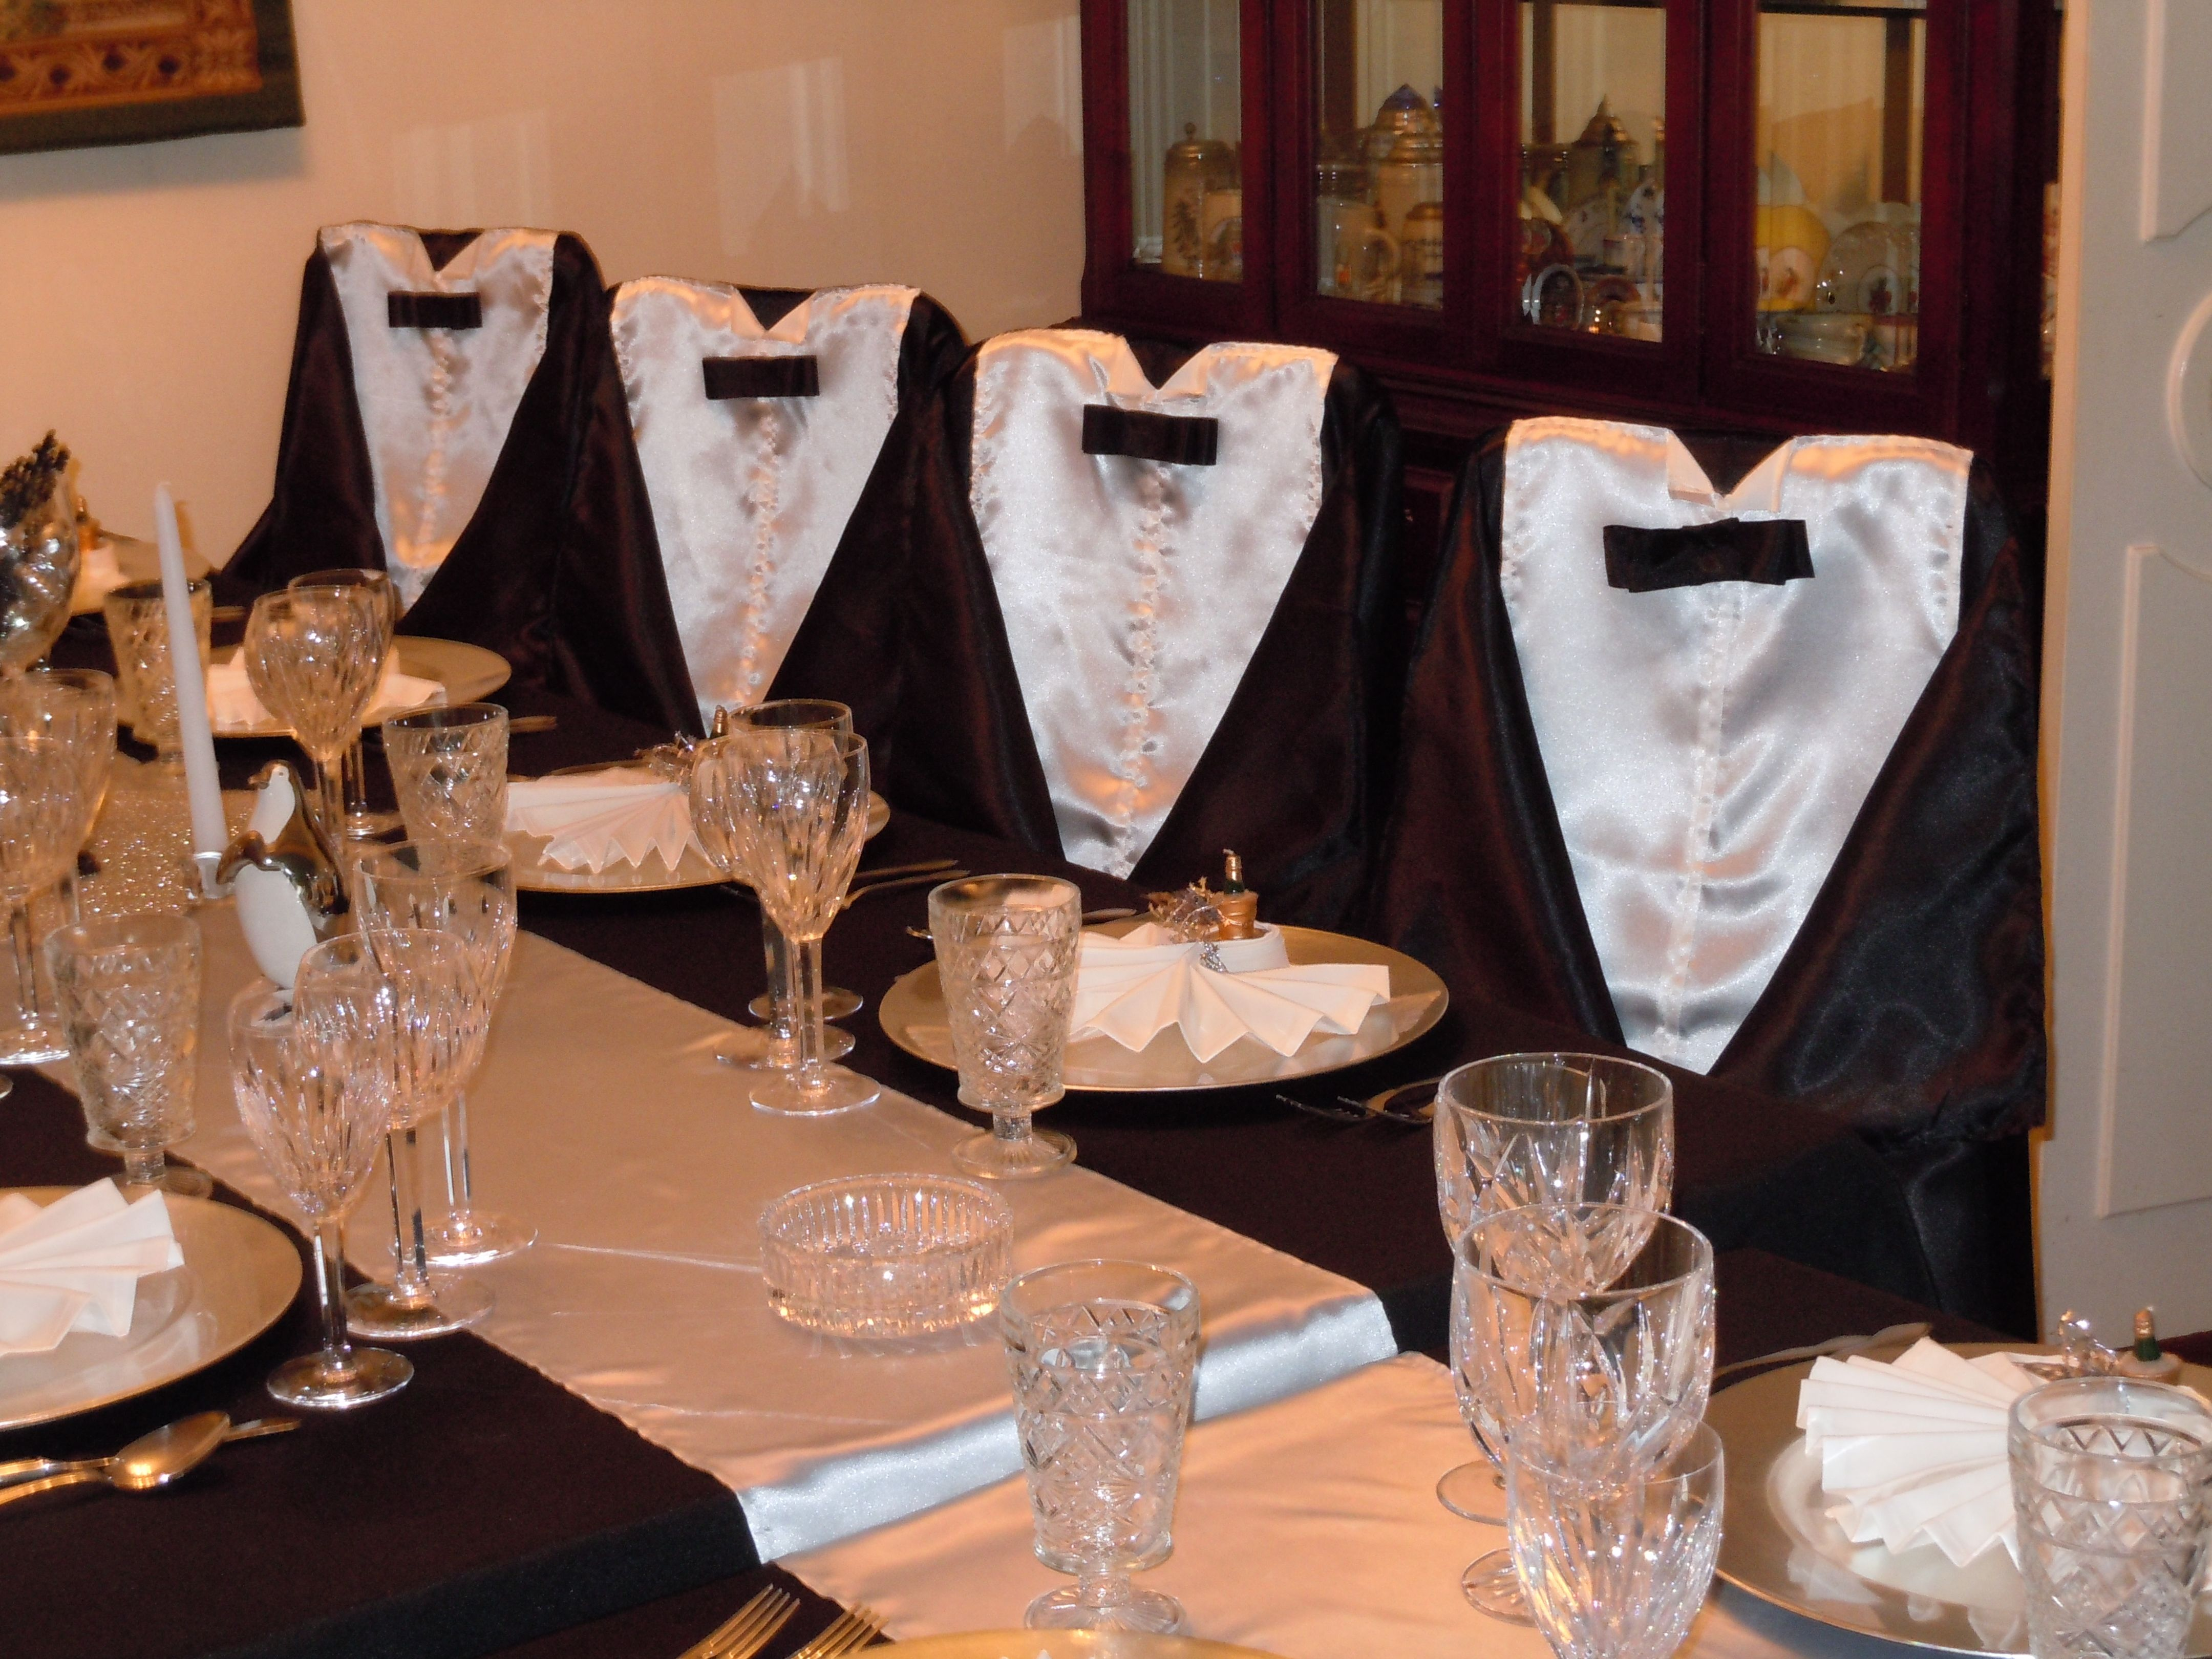 chair covers new year stand for baby years decor using sateen with white